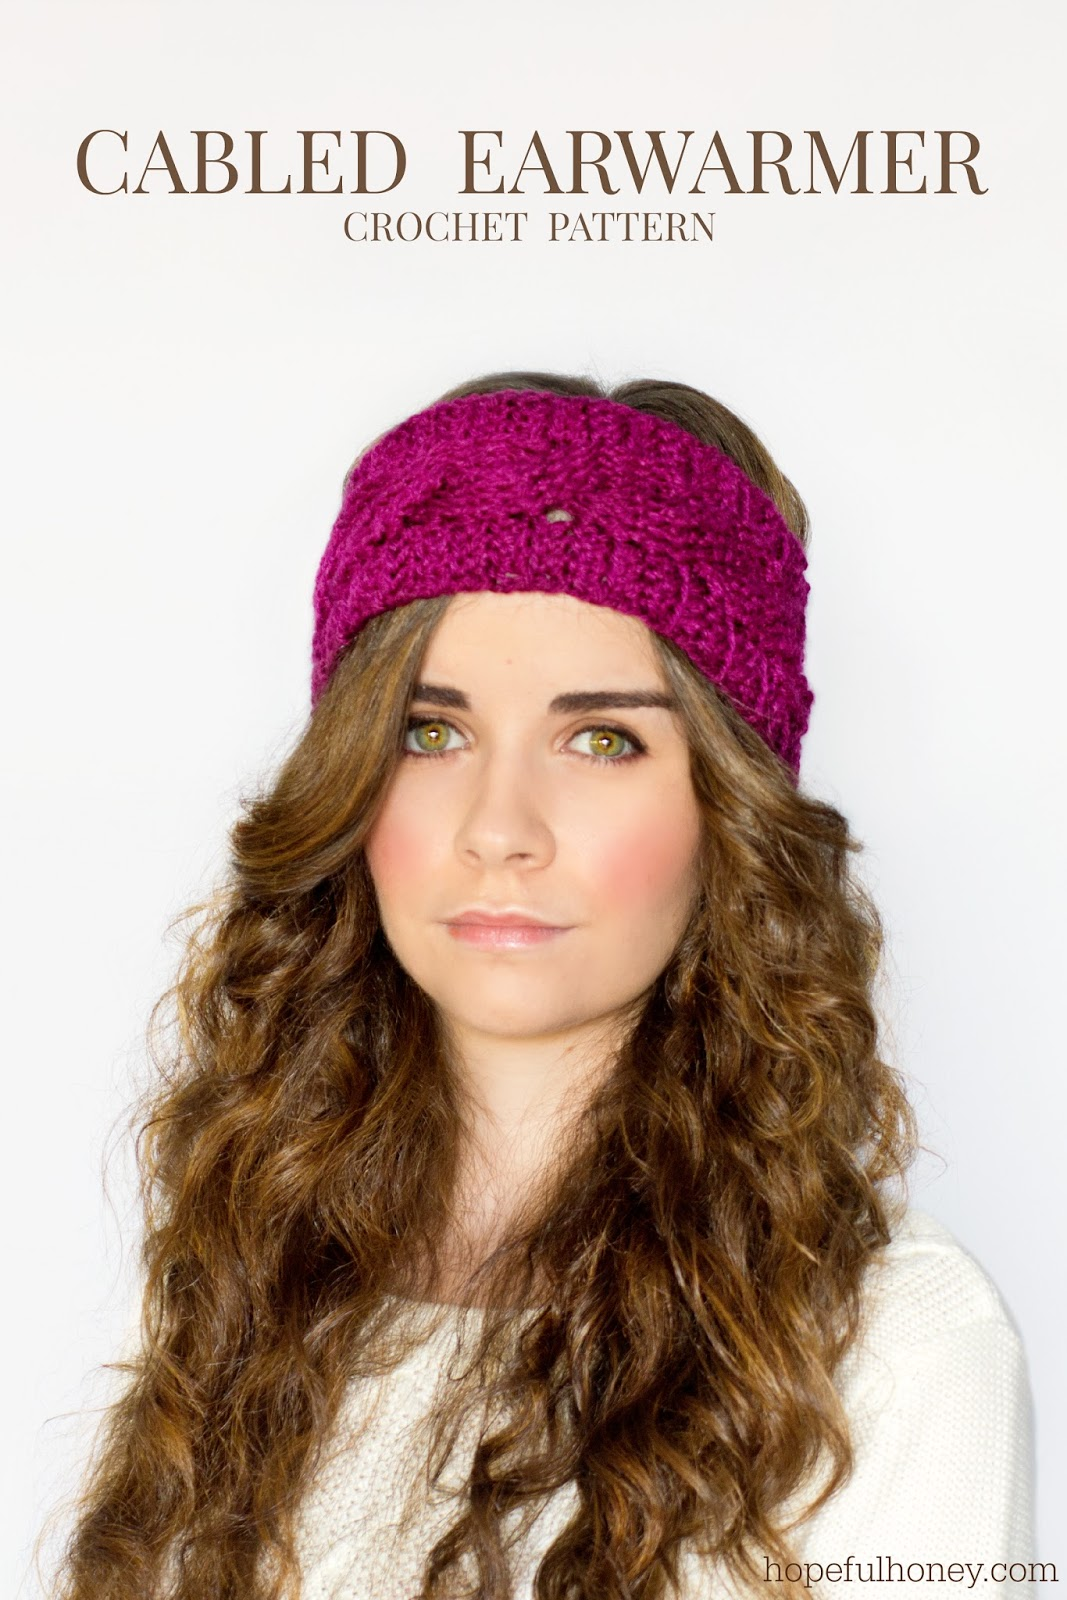 Crochet Patterns Galore Cabled Earwarmer